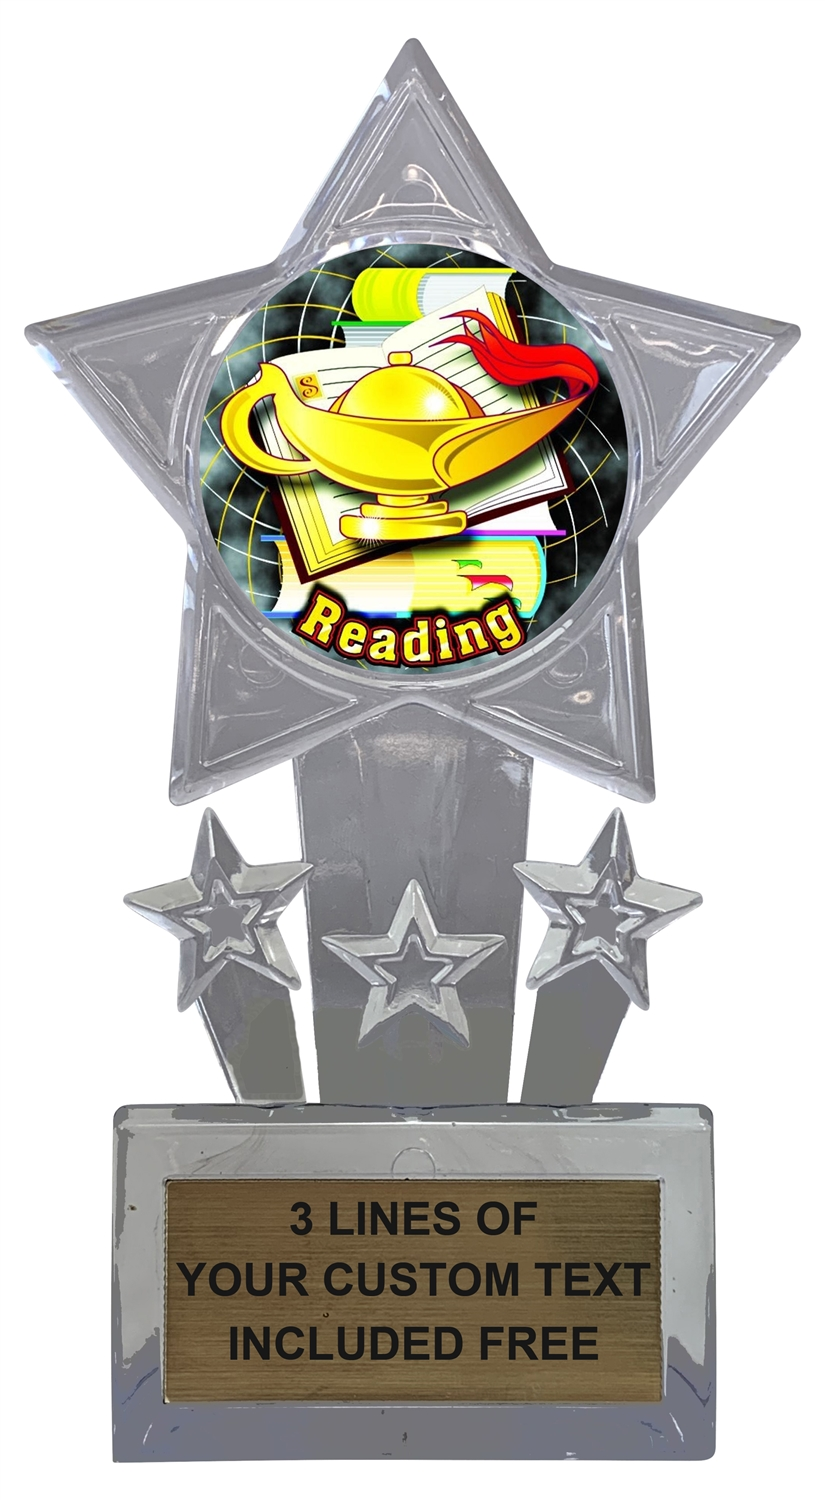 Reading Trophy Cup